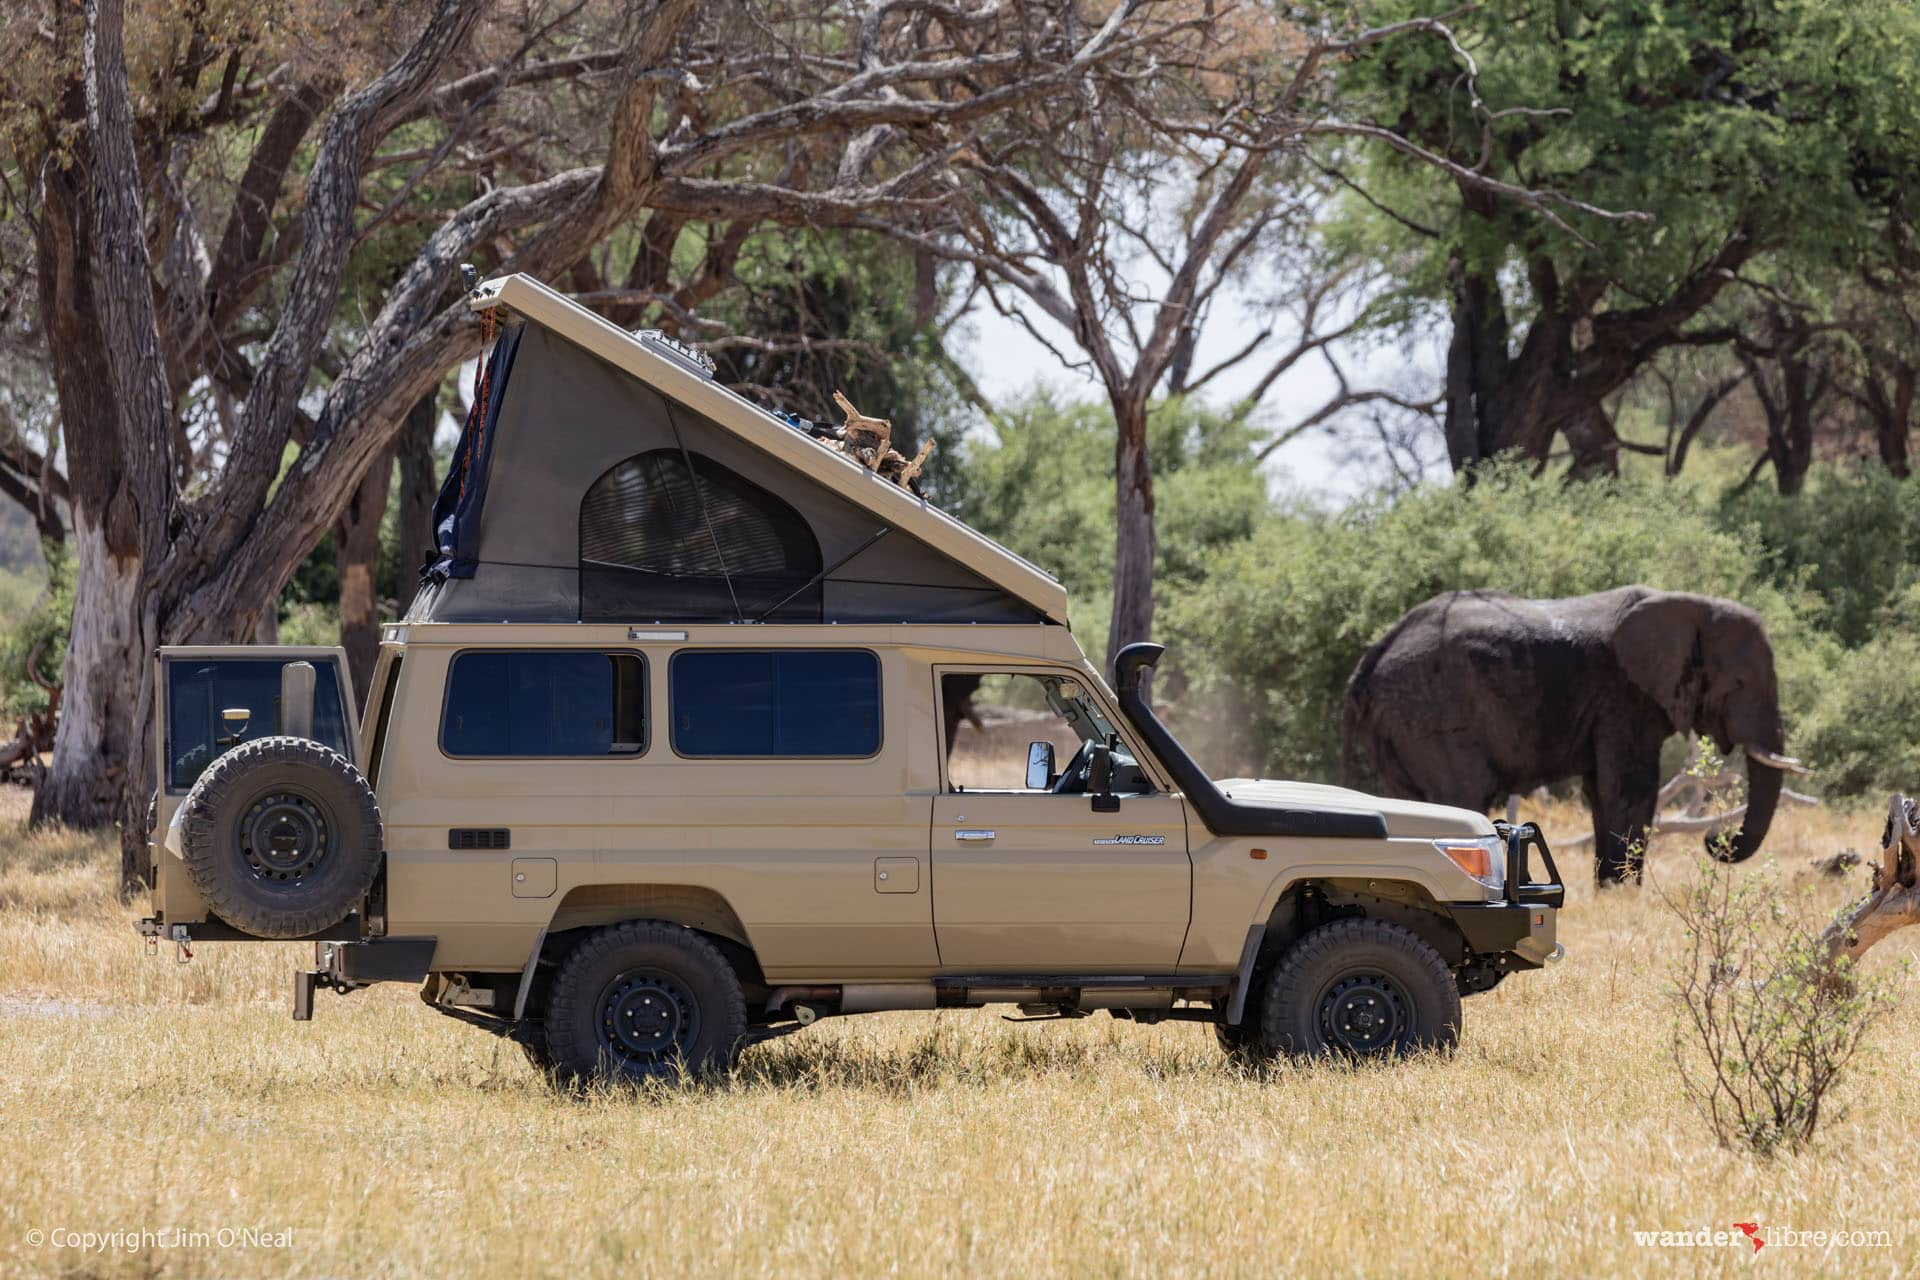 Land Cruiser Troopy Camper Conversion: Part 1 of 4